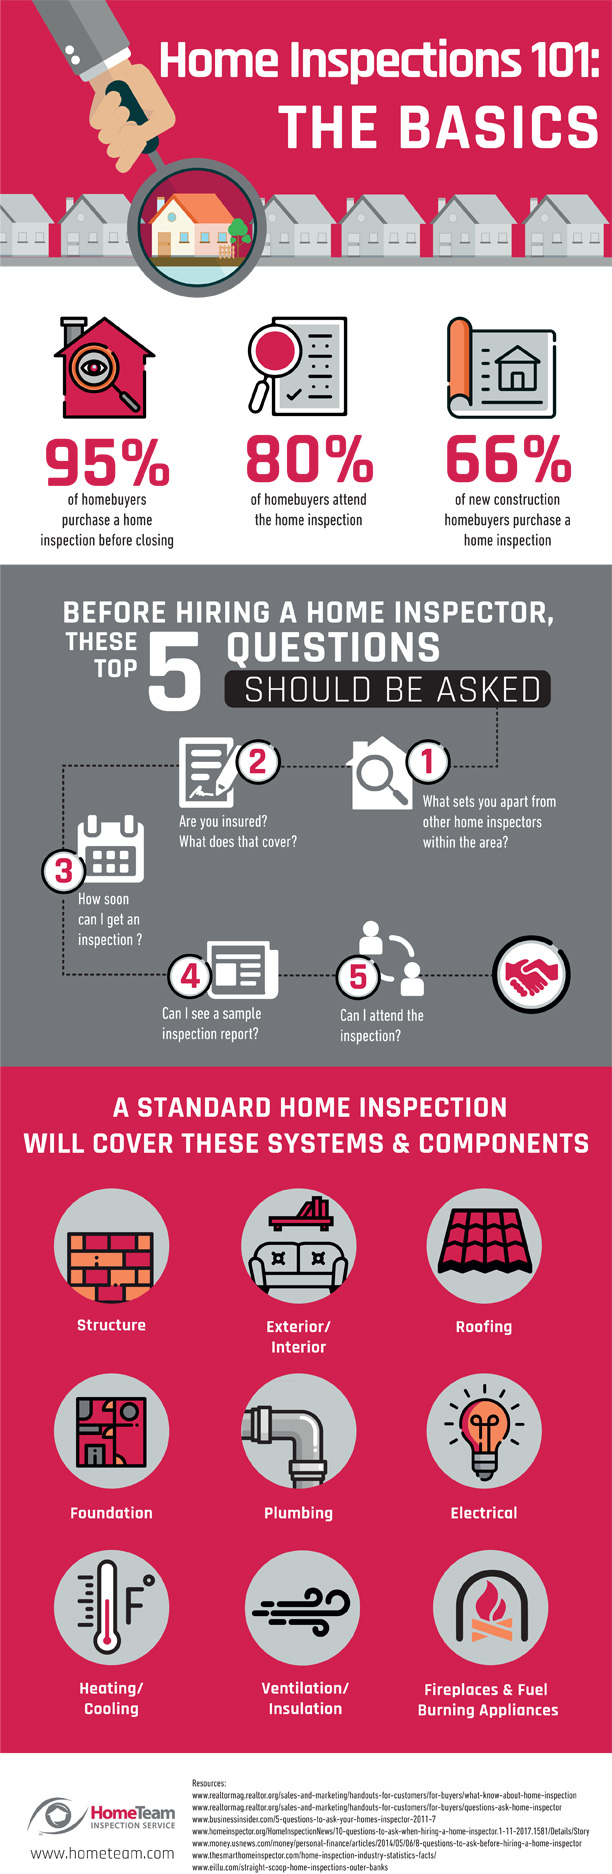 Home Inspections 101: THE BASICS | HomeTeam Inspection Service